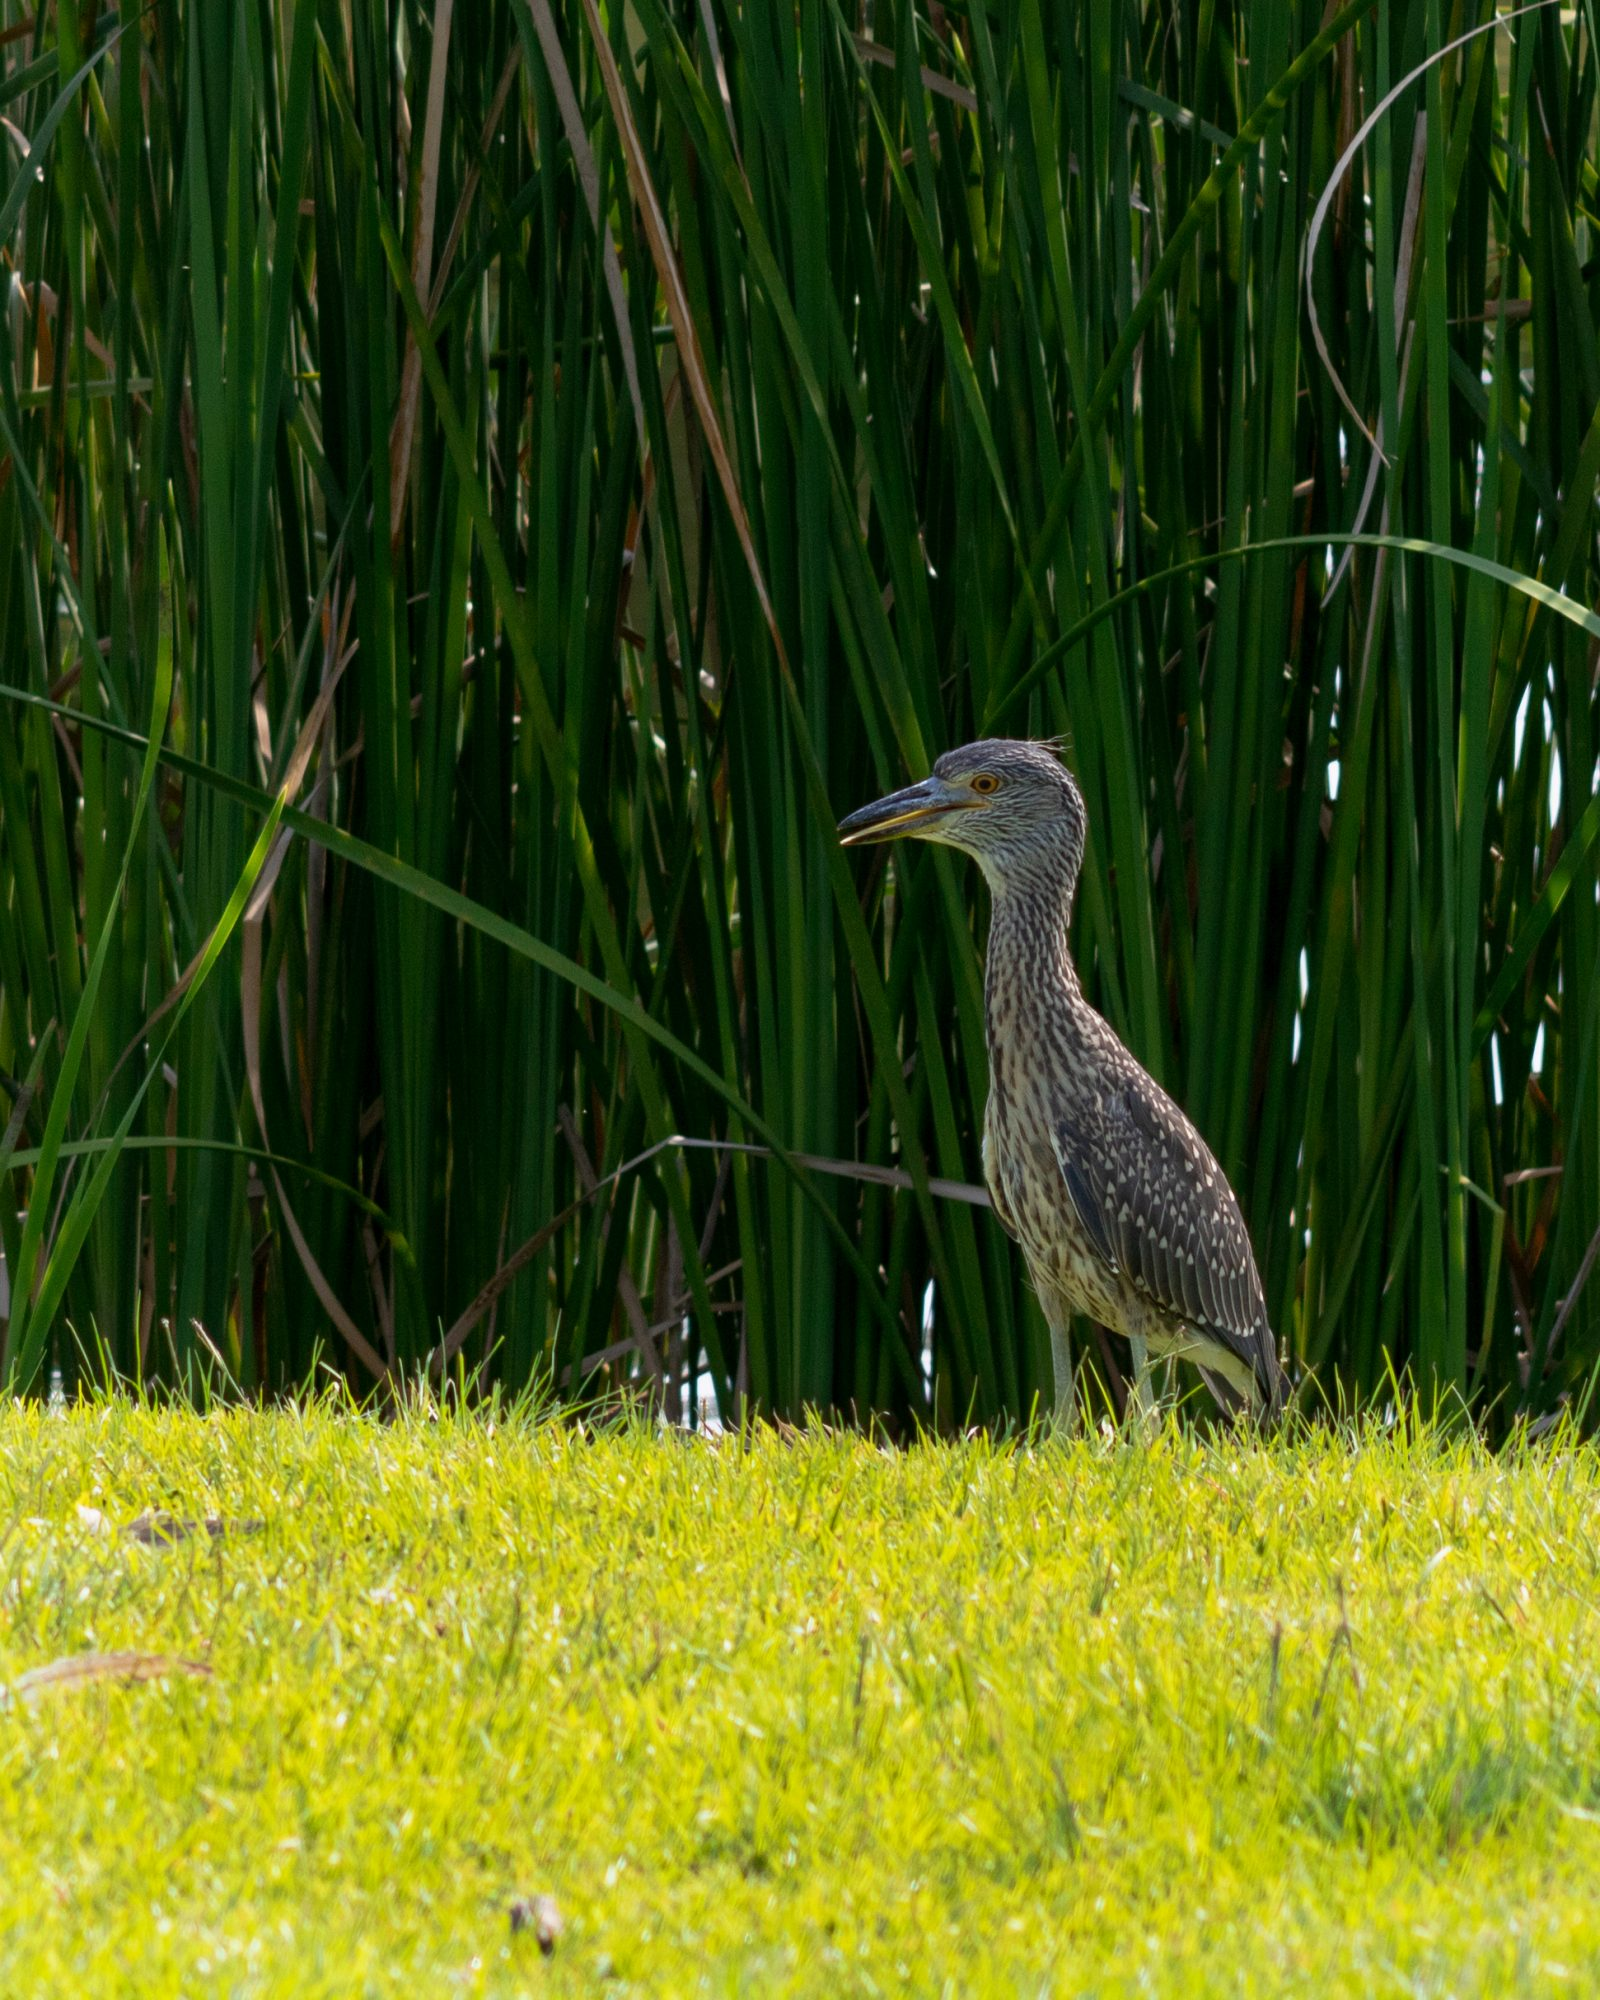 Young Heron Emerges from the Green Grass